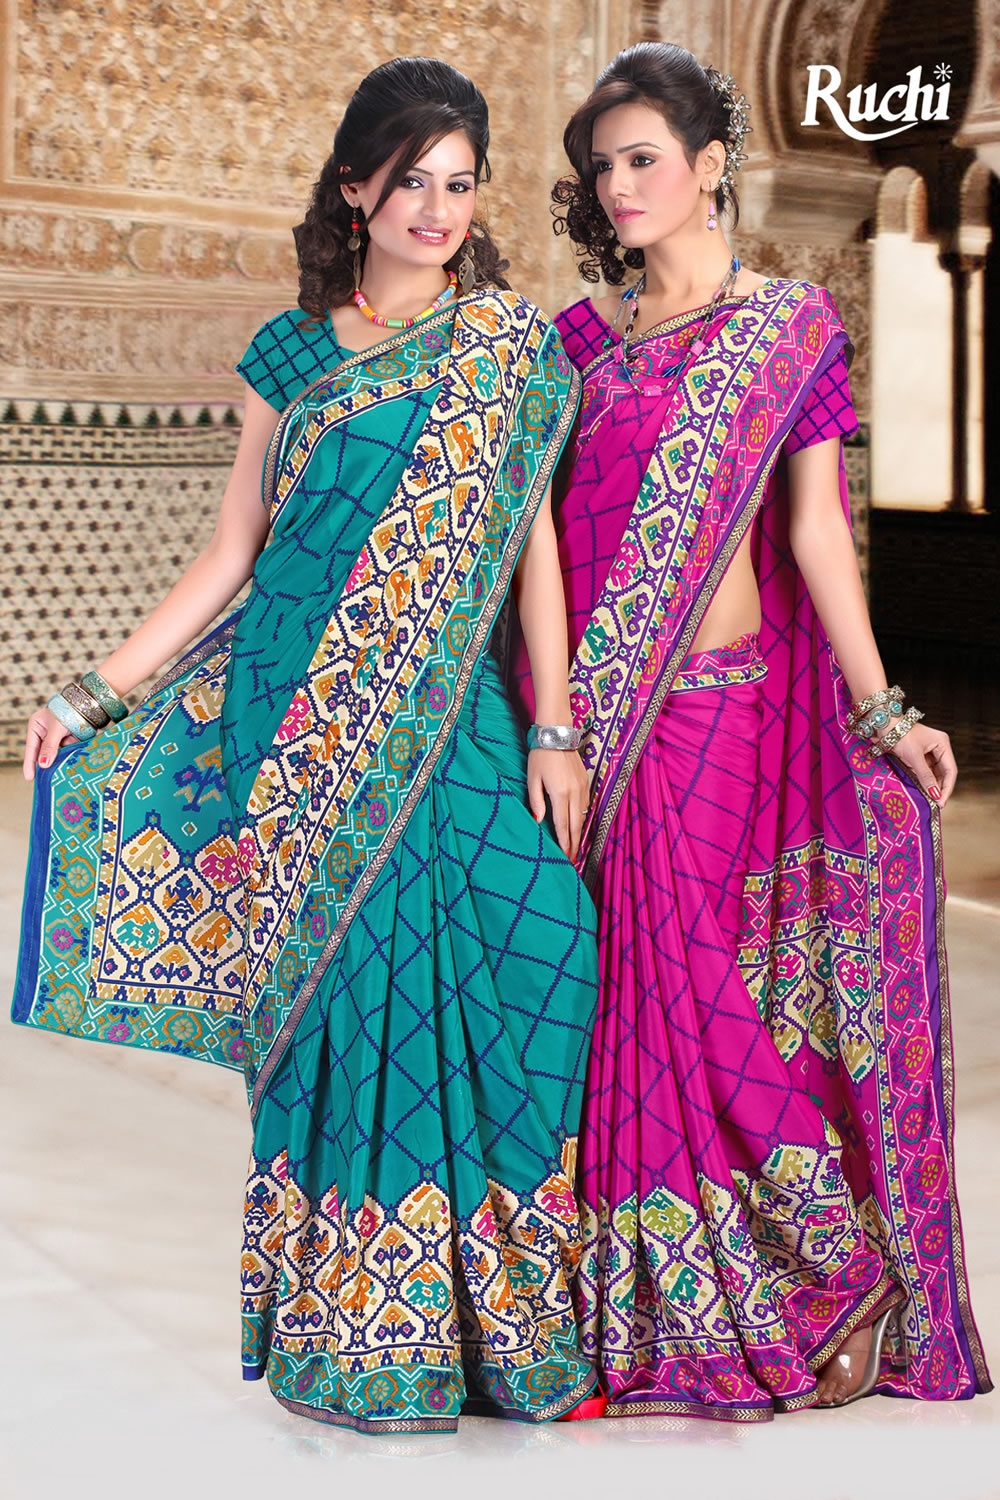 Ruchi Designer Sarees | Colorful Party Wear Spring Saree Collection ...